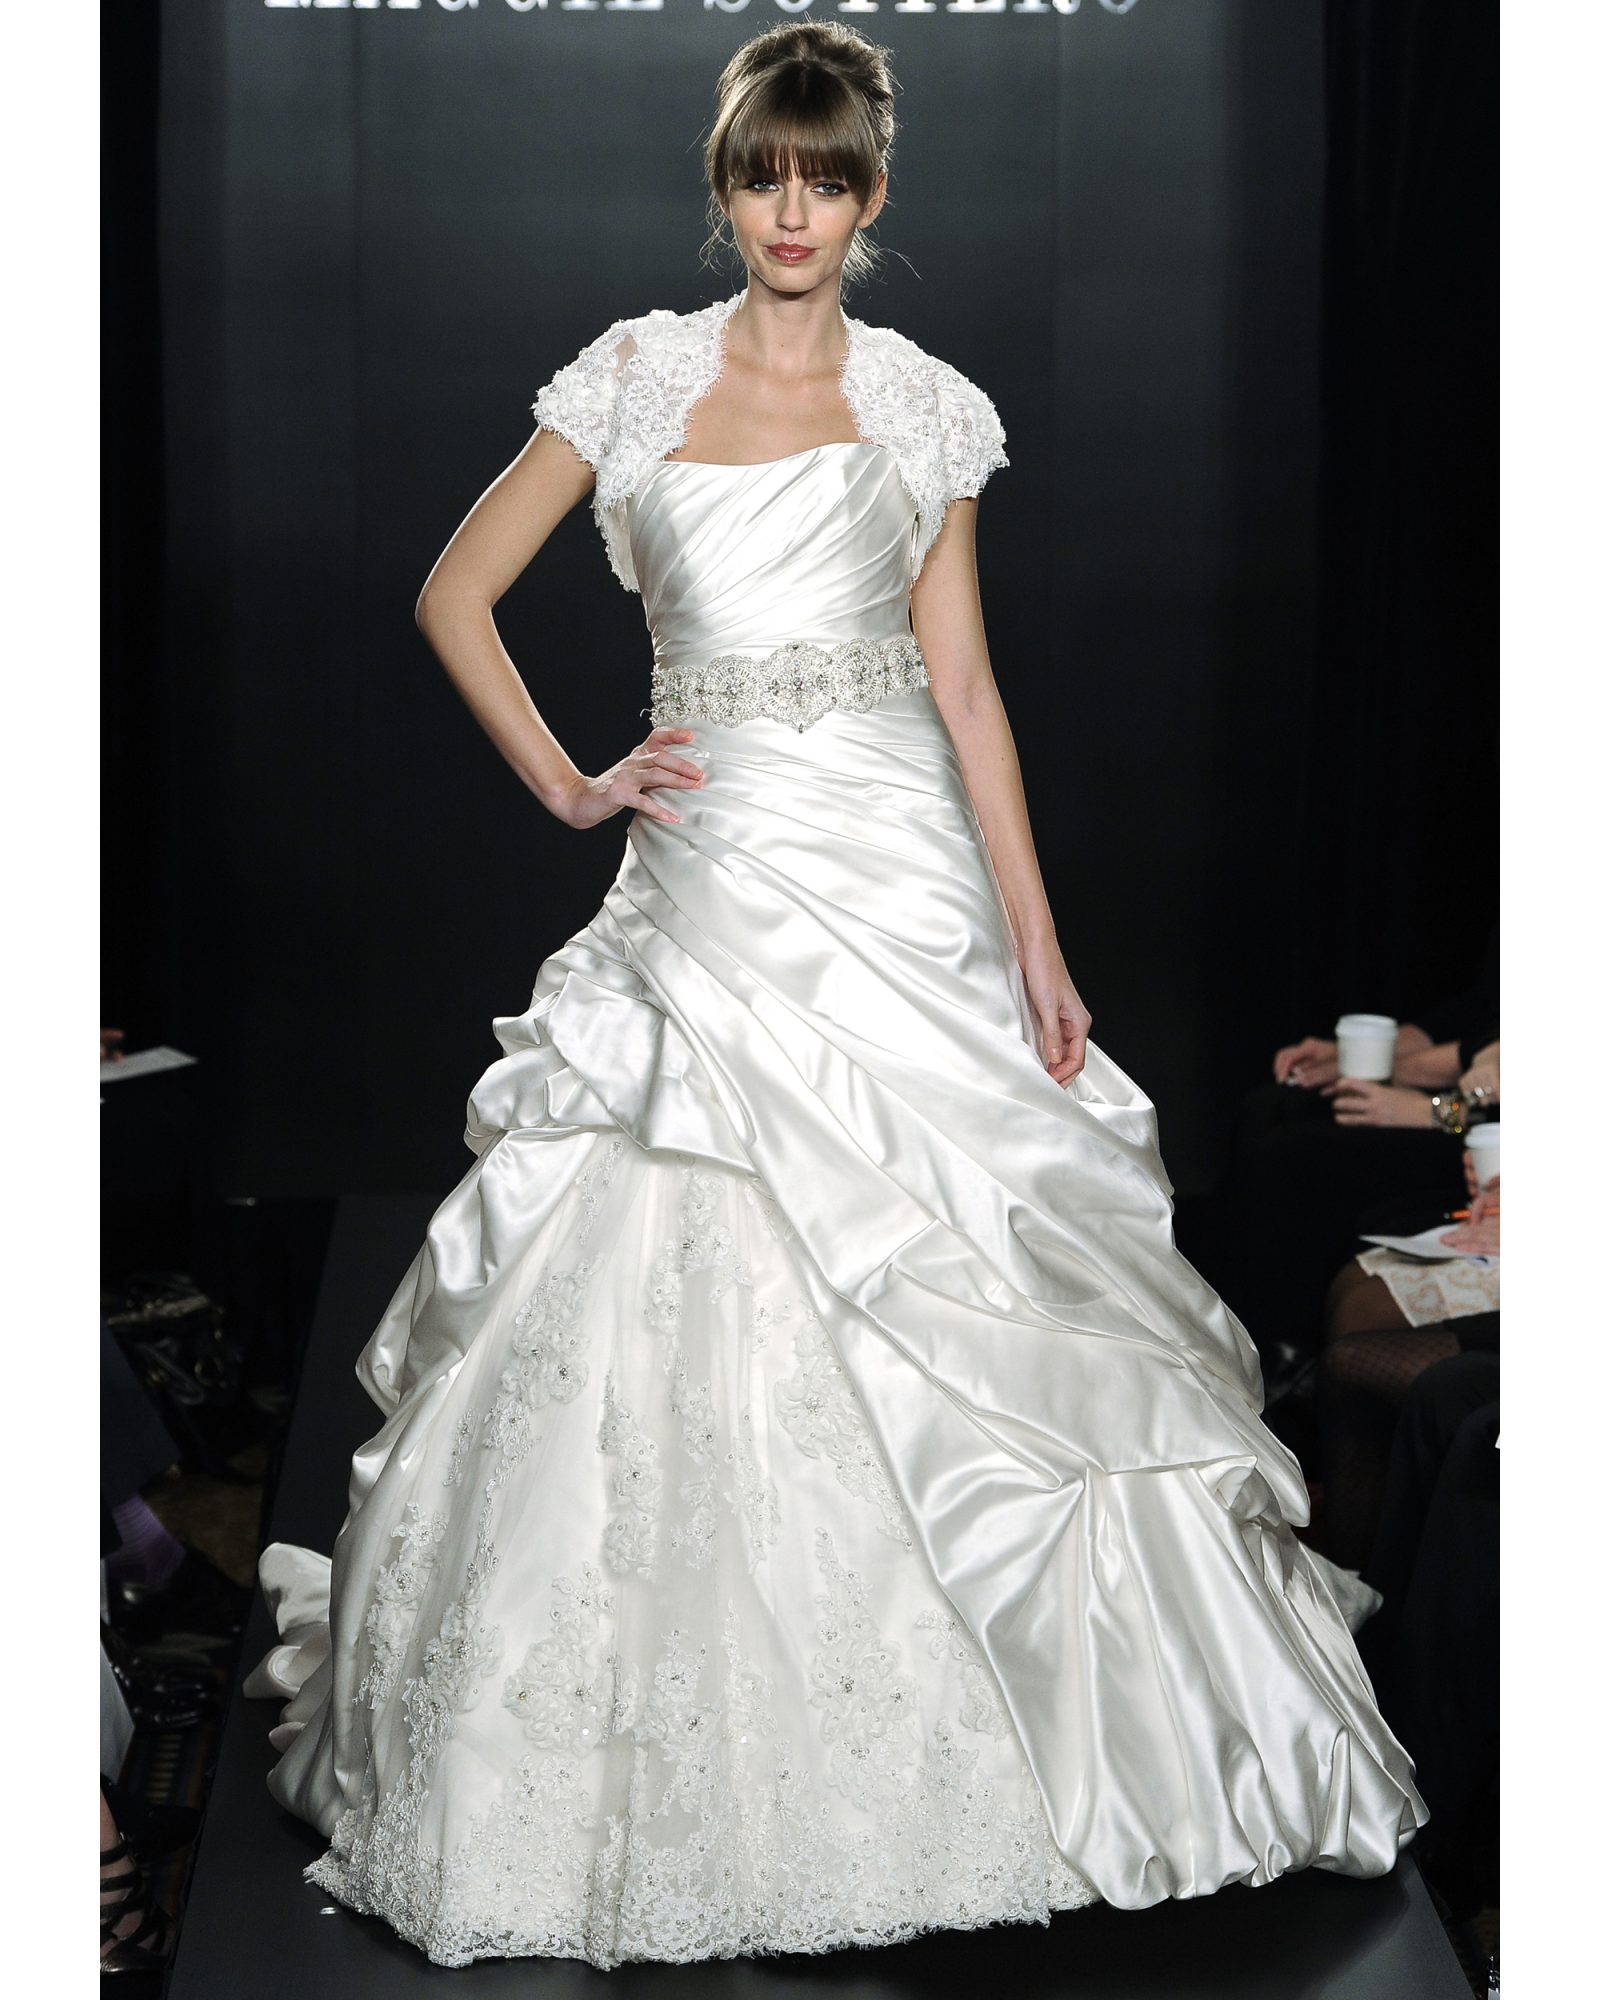 maggie-sottero-fall2012-wd108109_022.jpg